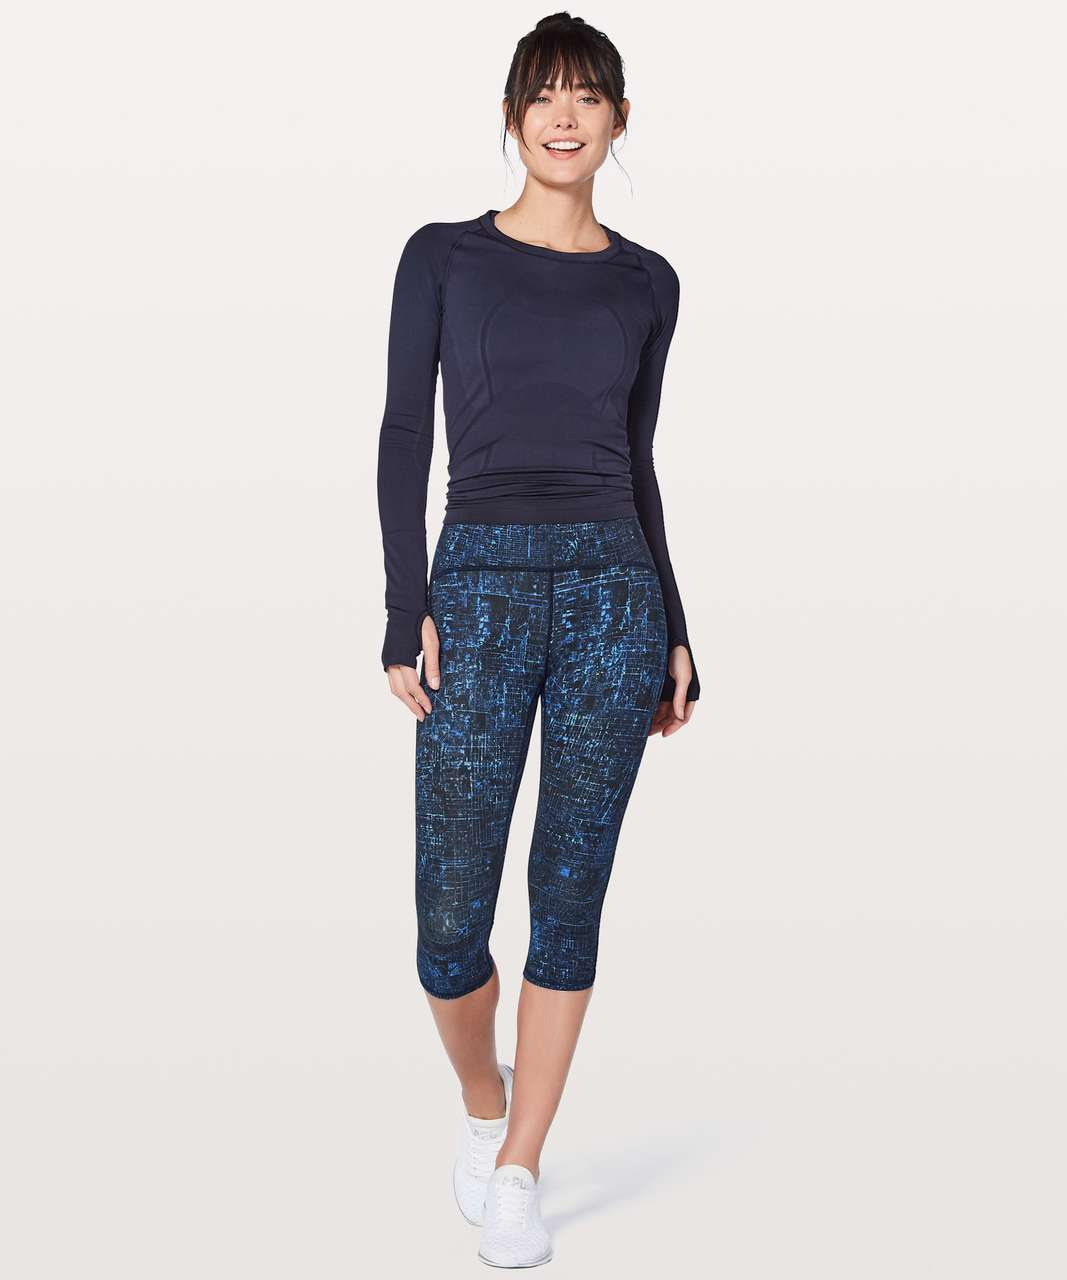 "Lululemon Train Times Crop 17"" - City Lights Multi Black / Black"